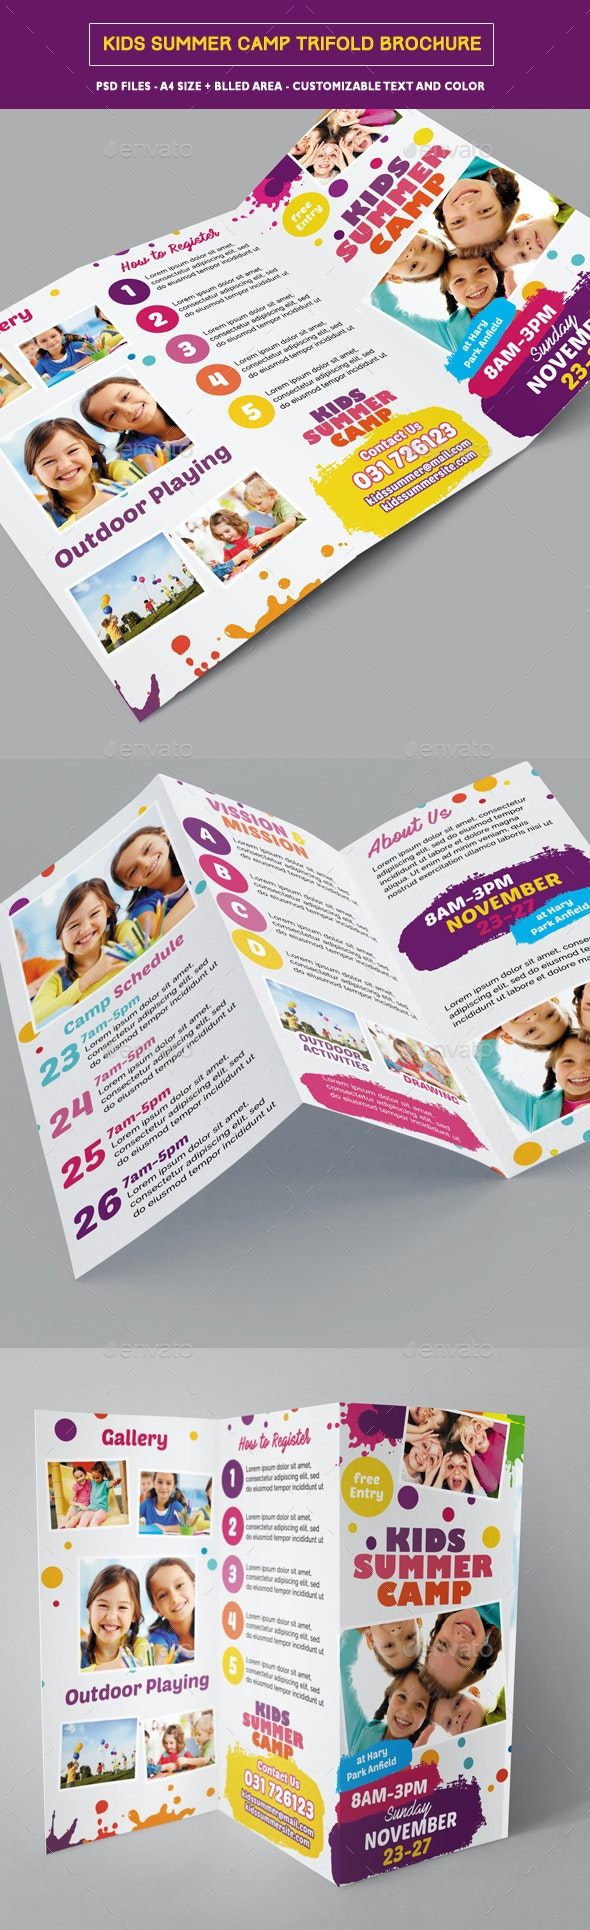 Kids Summer Camp Trifold - Corporate Brochures